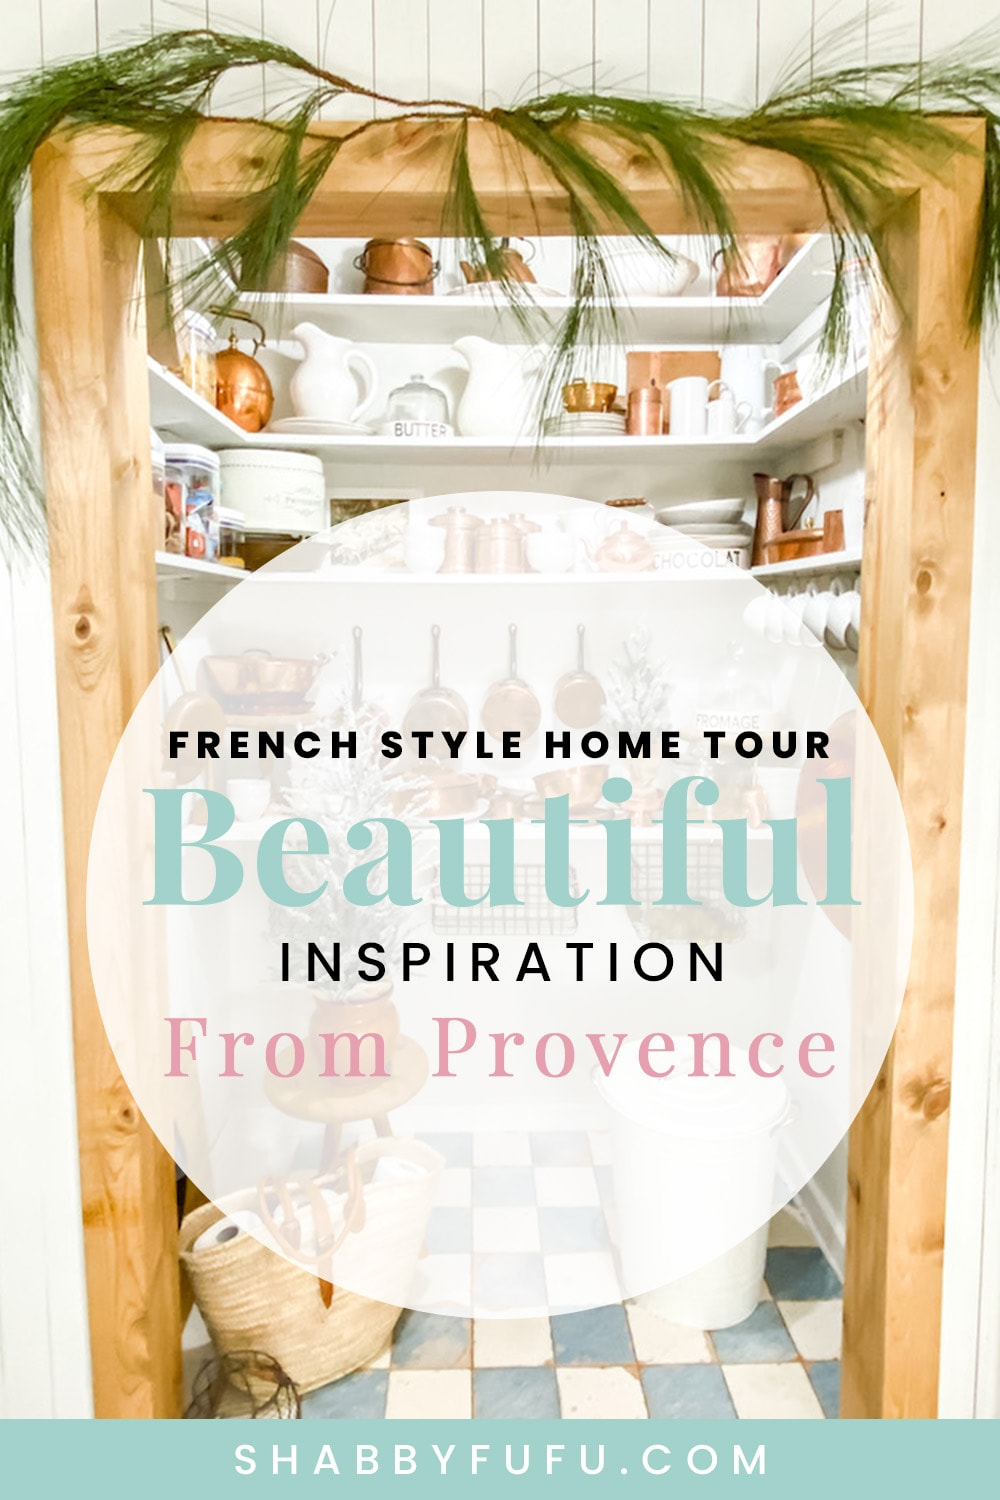 SHABBYFUFU - Beautiful French Style Home Tour - Inspired By Provence!